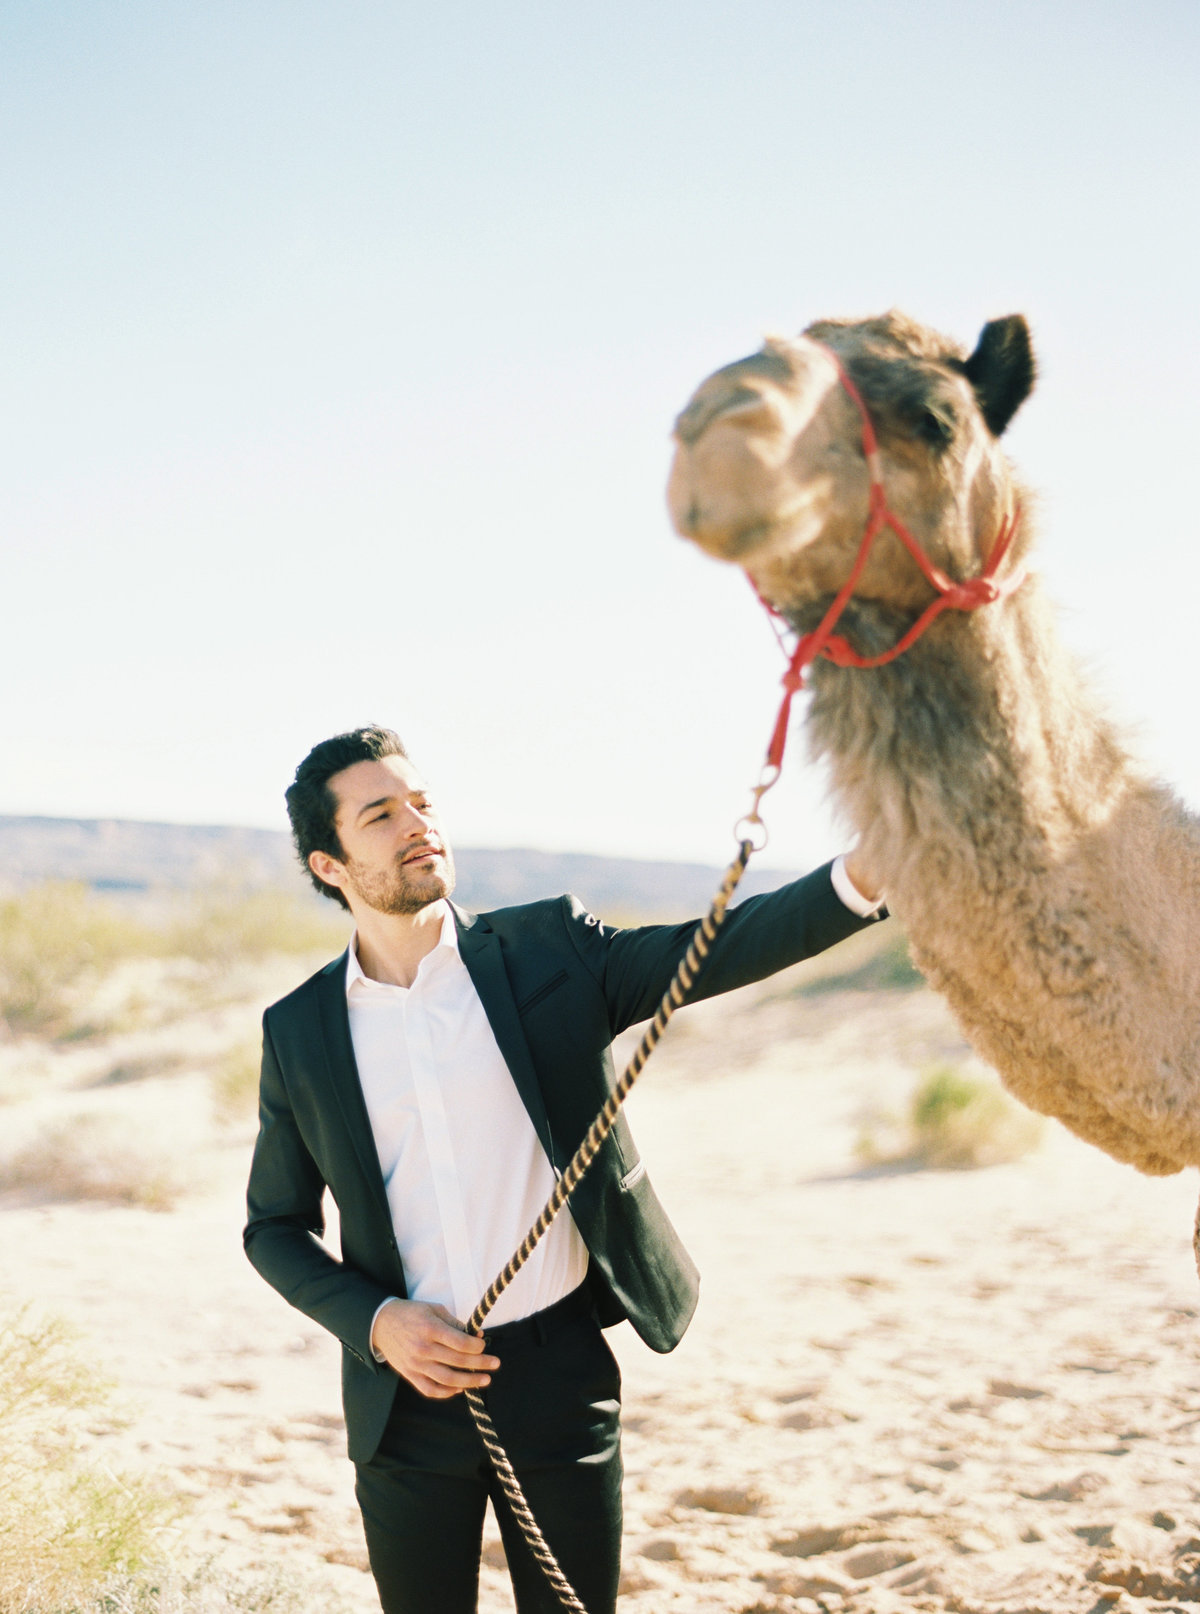 philip-casey-photography-desert-camel-editorial-session-08